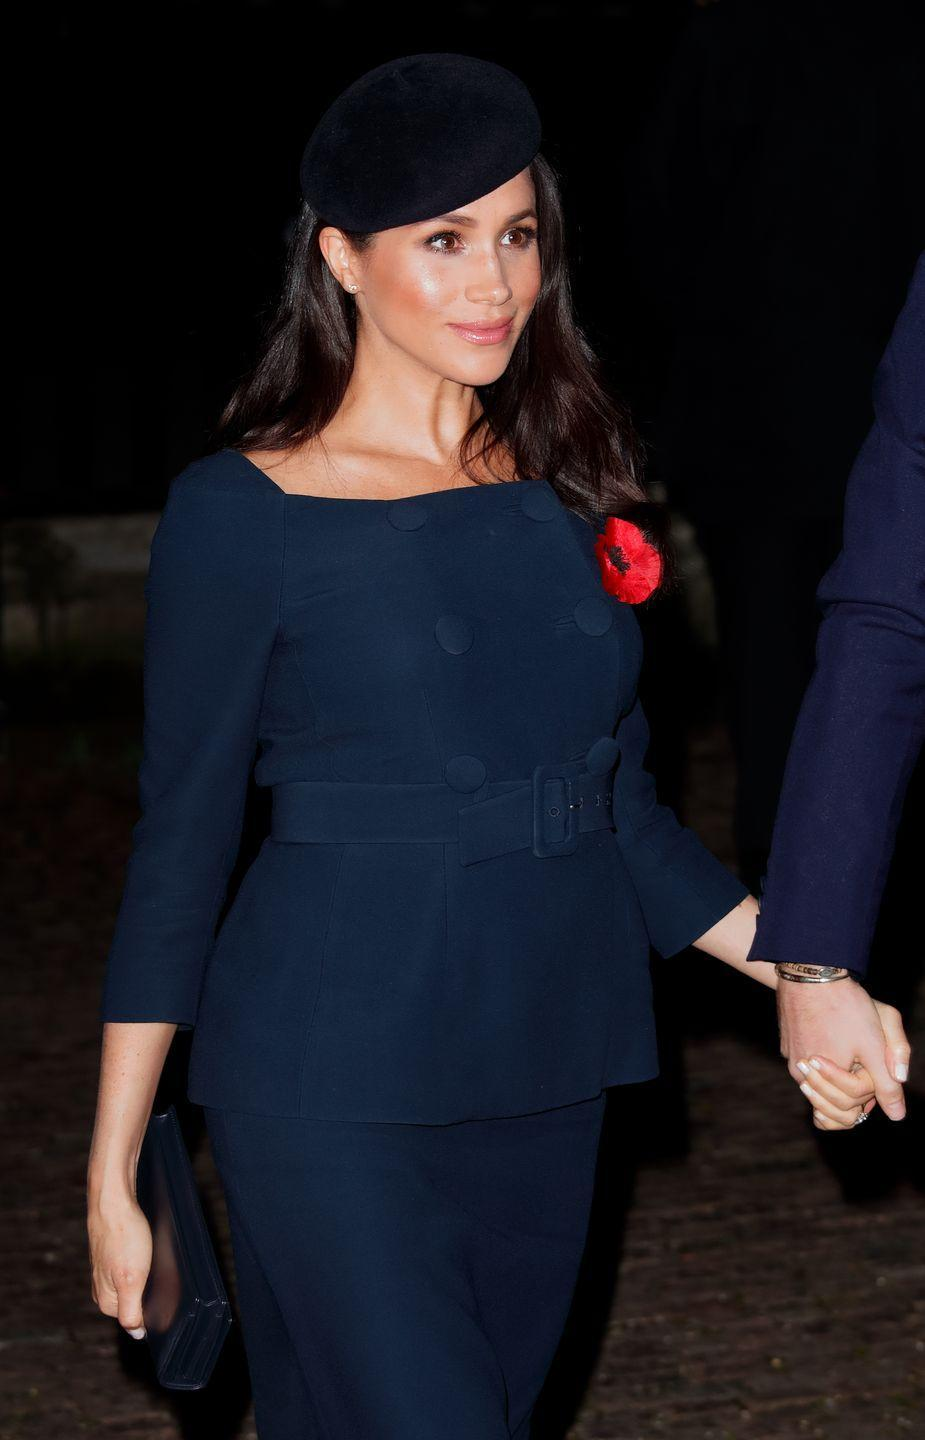 """<p>The royal wore a navy peacoat dress with bateau neckline - similar to her <a href=""""https://www.net-a-porter.com/gb/en/Shop/Designers/Givenchy?pn=1&npp=60&image_view=product&dScroll=0"""" rel=""""nofollow noopener"""" target=""""_blank"""" data-ylk=""""slk:Givenchy"""" class=""""link rapid-noclick-resp"""">Givenchy</a> wedding dress silhouette - accessorised with a velvet fascinator. </p><p>The ensemble was reminiscent of the pink <a href=""""https://www.net-a-porter.com/gb/en/Shop/Designers/Prada?pn=1&npp=60&image_view=product&dScroll=0"""" rel=""""nofollow noopener"""" target=""""_blank"""" data-ylk=""""slk:Prada"""" class=""""link rapid-noclick-resp"""">Prada</a> look she wore back in June 2018 when she attended the Queen's Young Leaders Awards.</p>"""